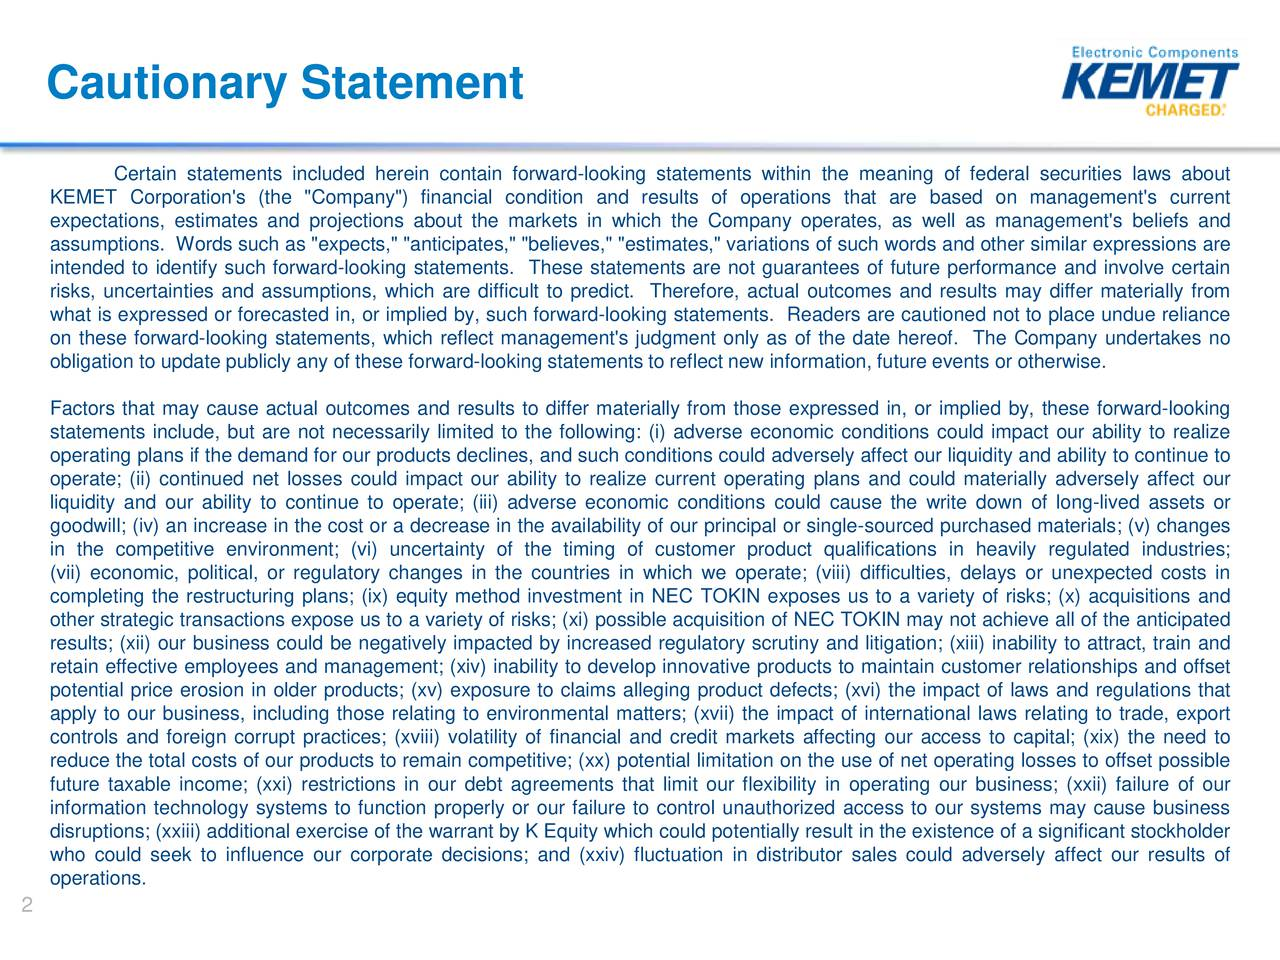 """Certain statements included herein contain forward-looking statements within the meaning of federal securities laws about KEMET Corporation's (the """"Company"""") financial condition and results of operations that are based on management's current expectations, estimates and projections about the markets in which the Company operates, as well as management's beliefs and assumptions. Words such as """"expects,"""" """"anticipates,"""" """"believes,"""" """"estimates,"""" variations of such words and other similar expressions are intended to identify such forward-looking statements. These statements are not guarantees of future performance and involve certain risks, uncertainties and assumptions, which are difficult to predict. Therefore, actual outcomes and results may differ materially from what is expressed or forecasted in, or implied by, such forward-looking statements. Readers are cautioned not to place undue reliance on these forward-looking statements, which reflect management's judgment only as of the date hereof. The Company undertakes no obligation to update publicly any of these forward-looking statements to reflect new information, future events or otherwise. Factors that may cause actual outcomes and results to differ materially from those expressed in, or implied by, these forward-looking statements include, but are not necessarily limited to the following: (i) adverse economic conditions could impact our ability to realize operating plans if the demand for our products declines, and such conditions could adversely affect our liquidity and ability to continue to operate; (ii) continued net losses could impact our ability to realize current operating plans and could materially adversely affect our liquidity and our ability to continue to operate; (iii) adverse economic conditions could cause the write down of long-lived assets or goodwill; (iv) an increase in the cost or a decrease in the availability of our principal or single-sourced purchased materials; (v) changes in the competi"""